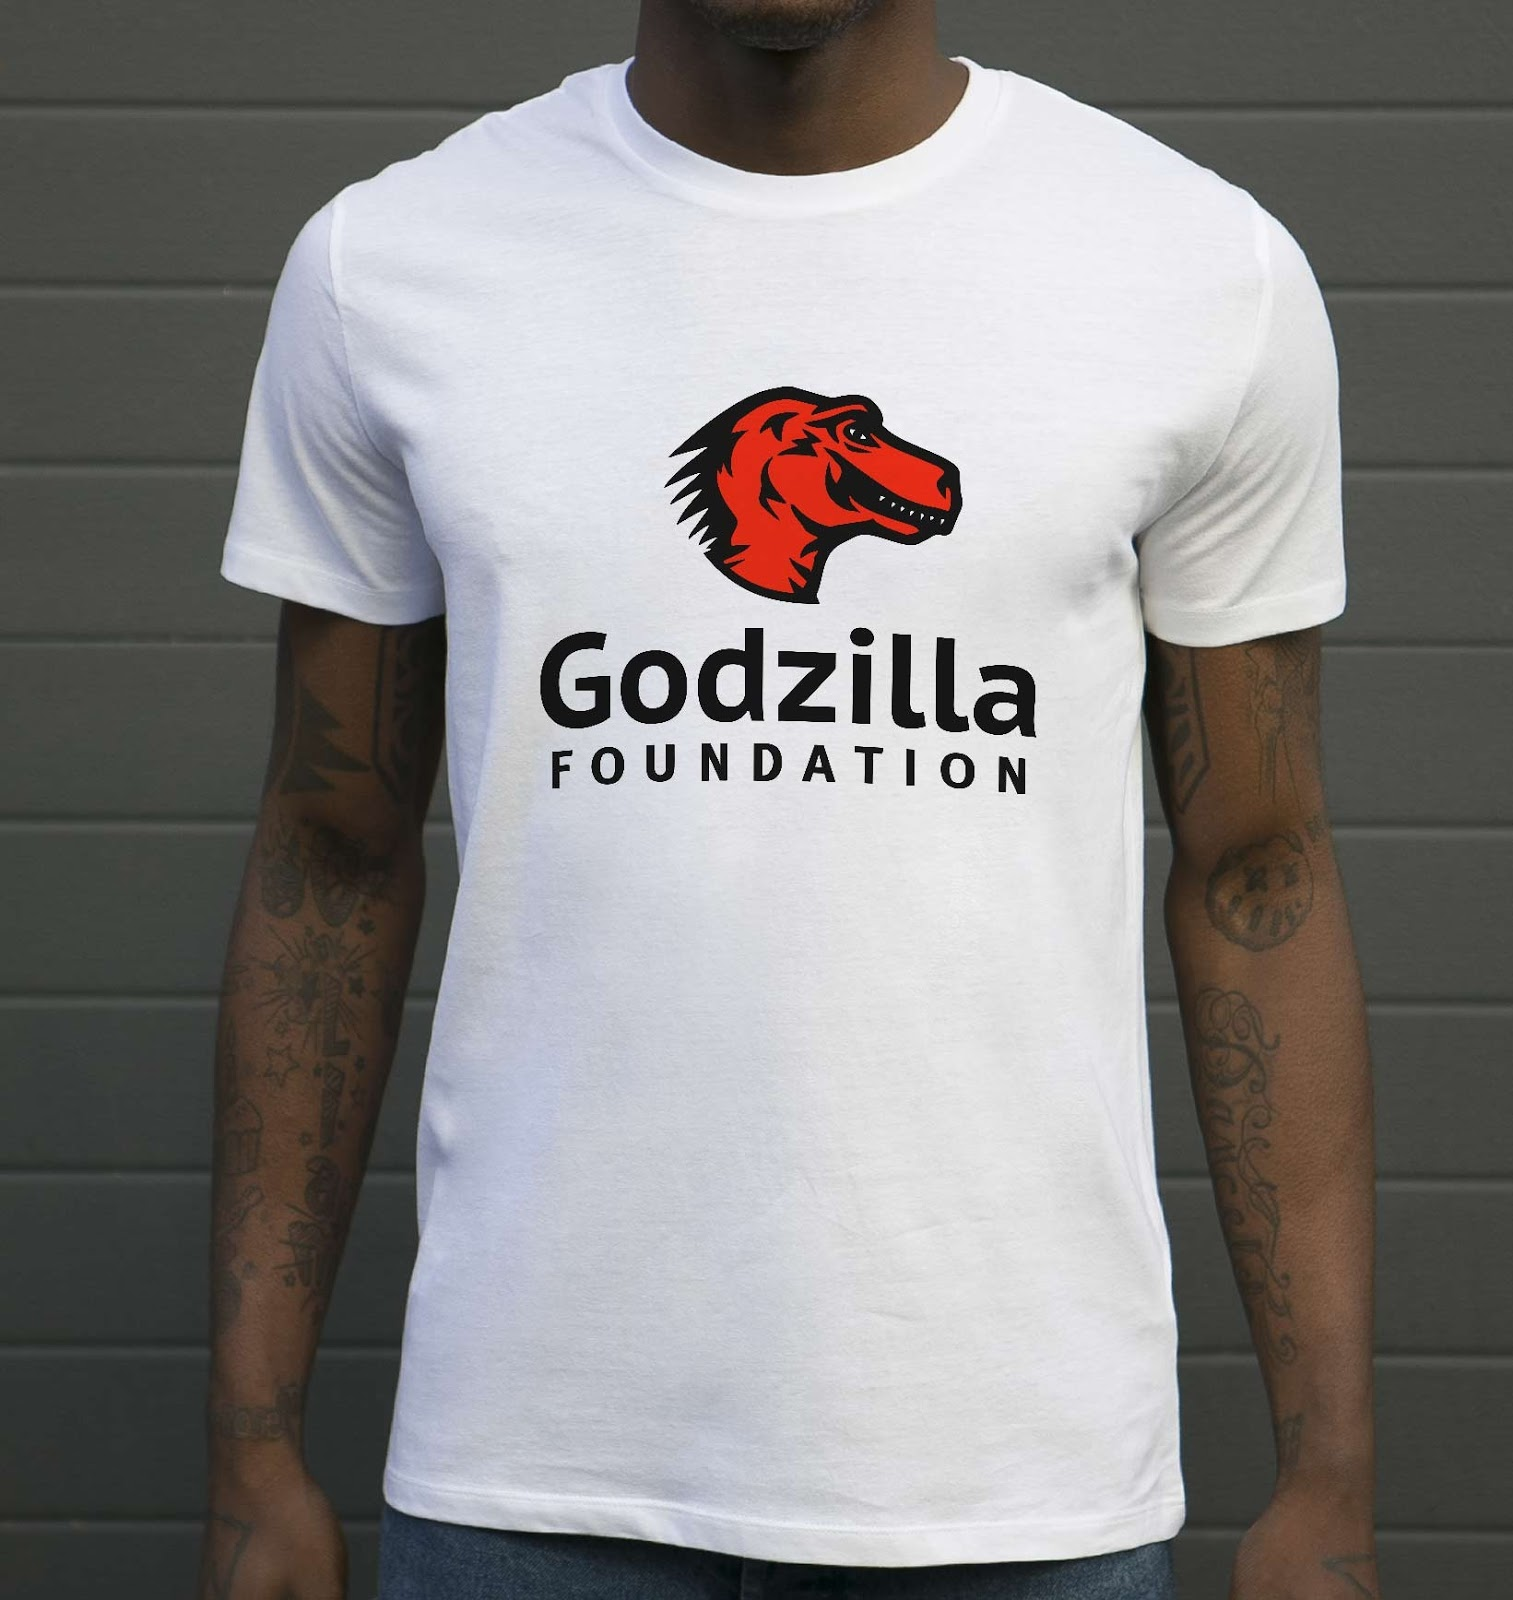 https://grafitee.co/tshirts/godzilla-t-shirt